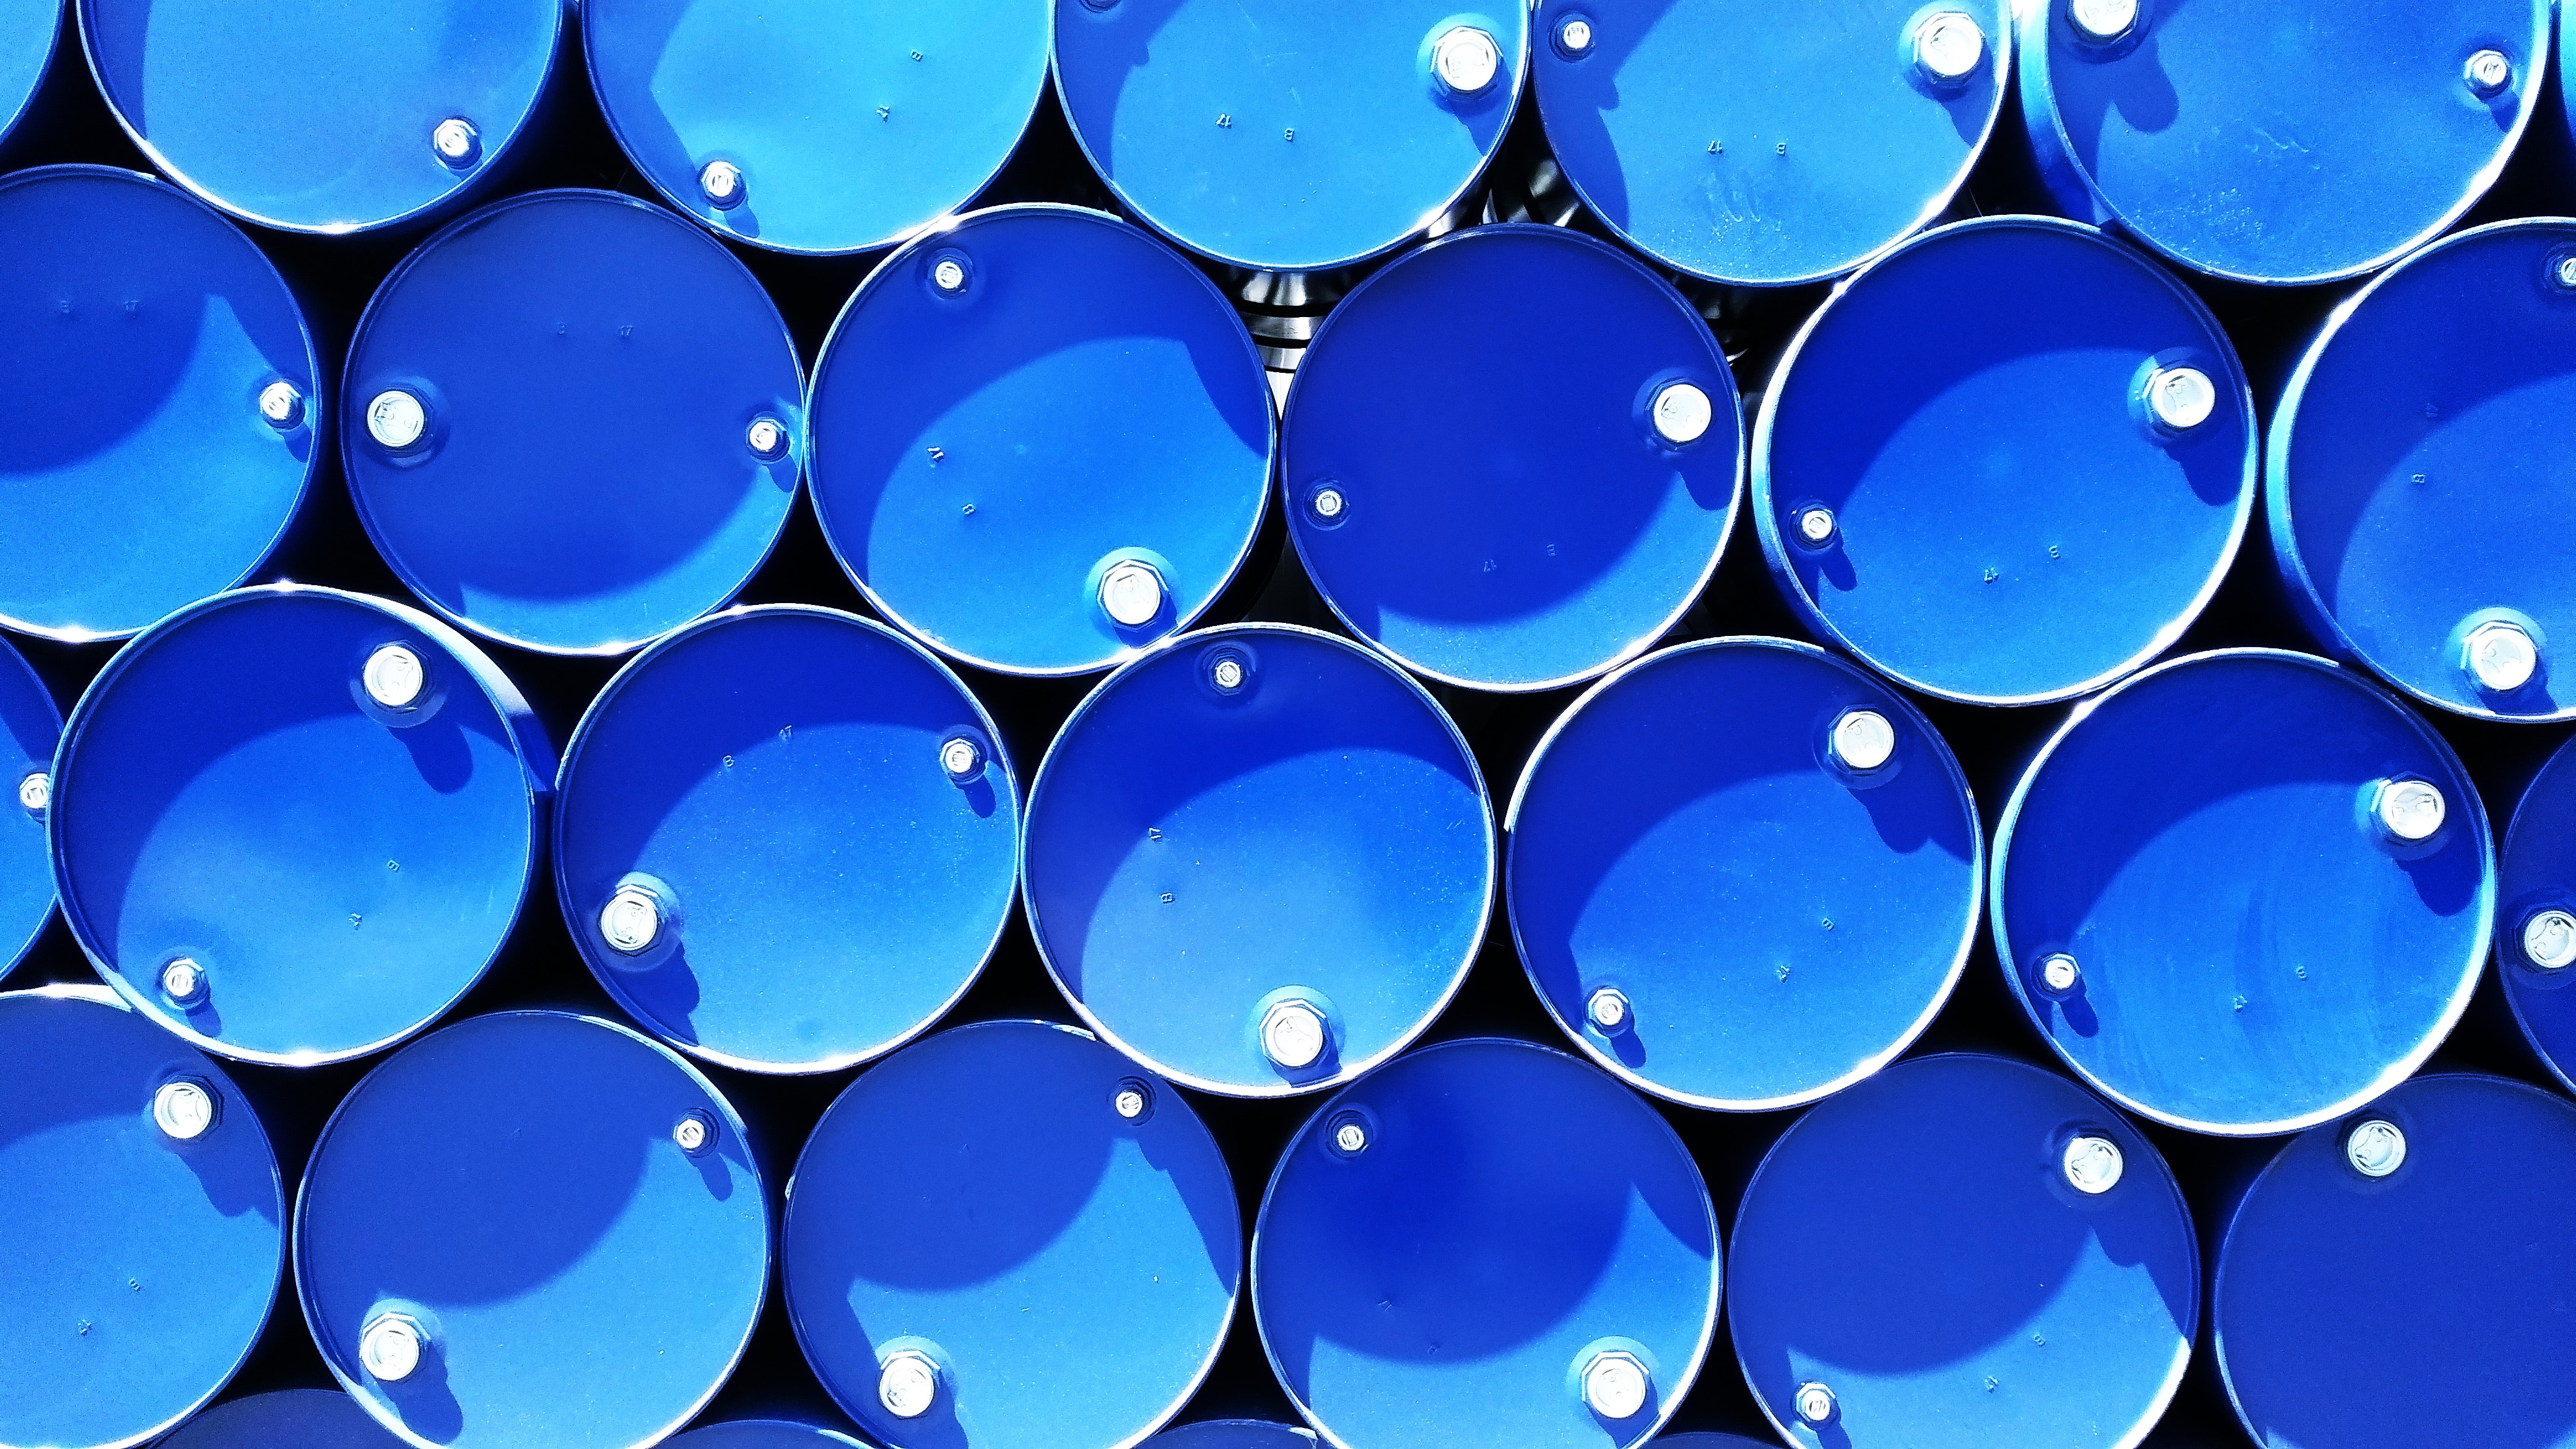 blue-containers-drums-615670